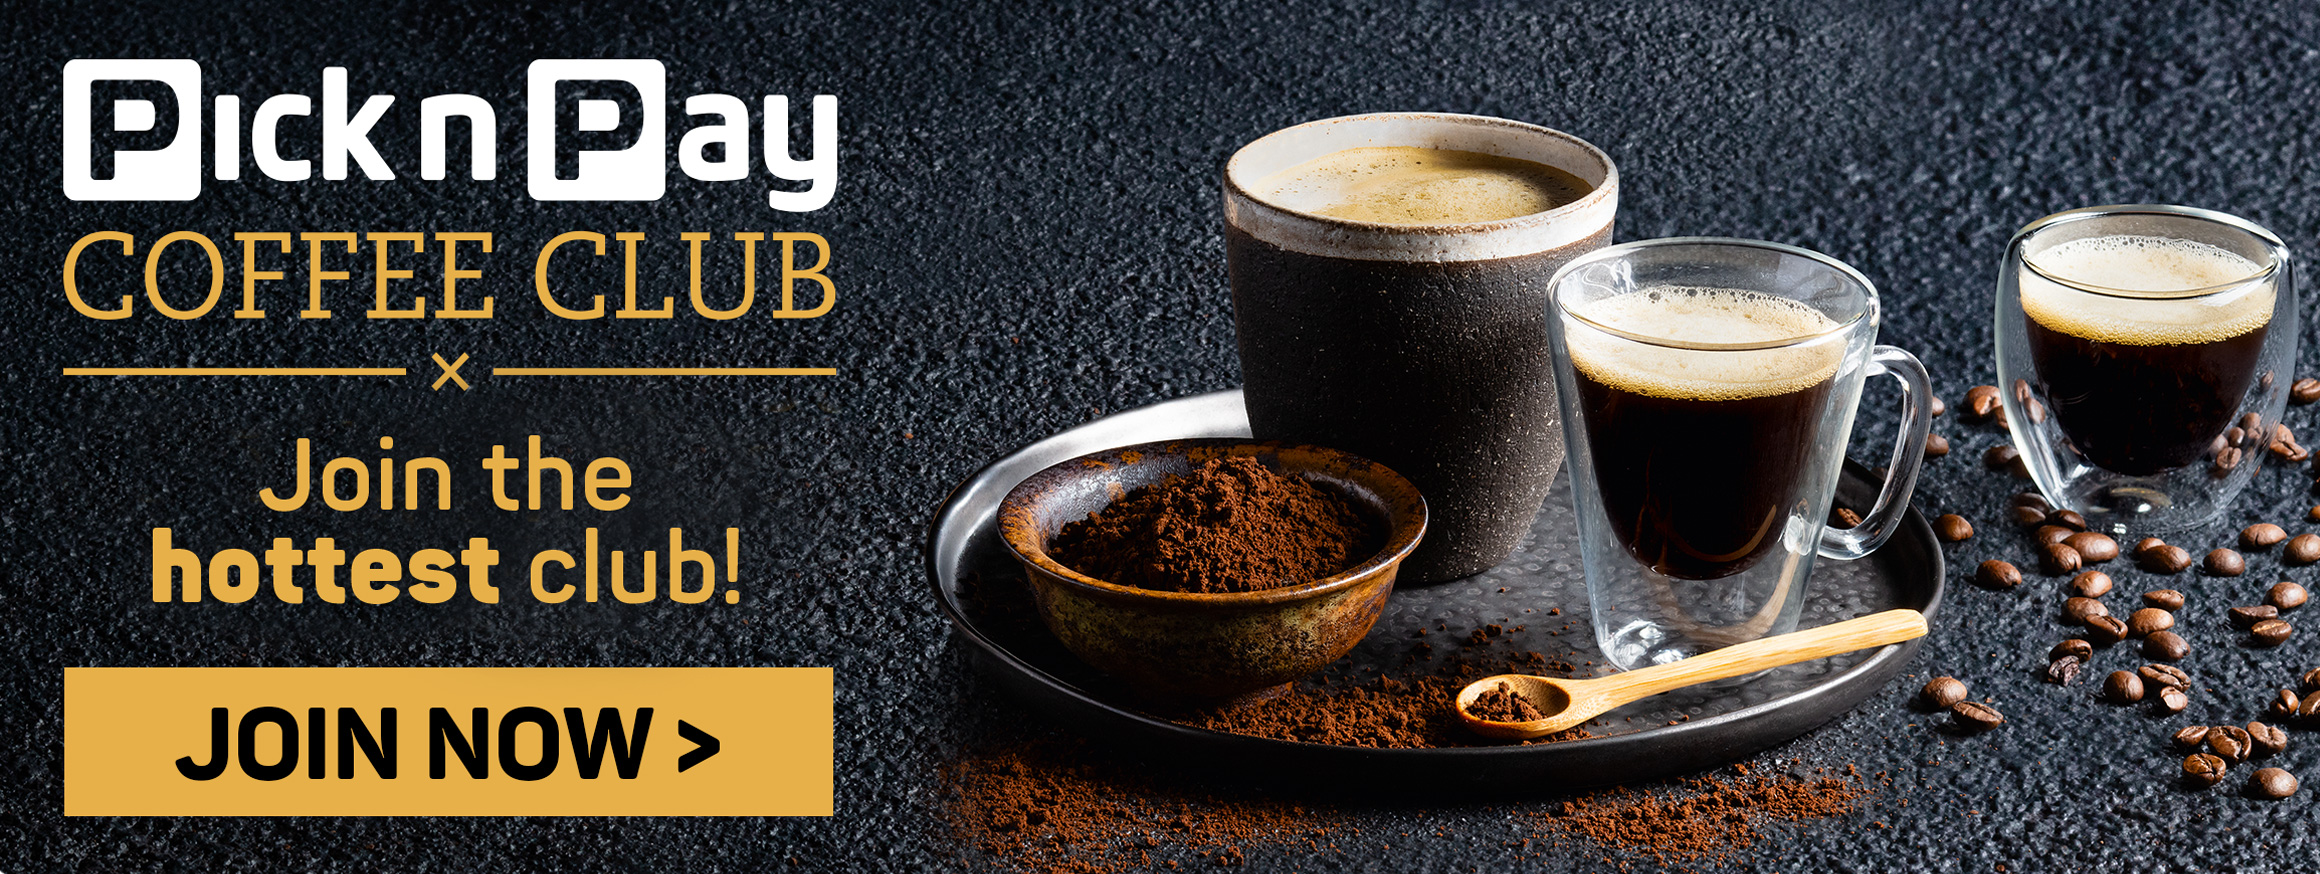 Pick n Pay Coffee Club. Join the hottest NEW club!